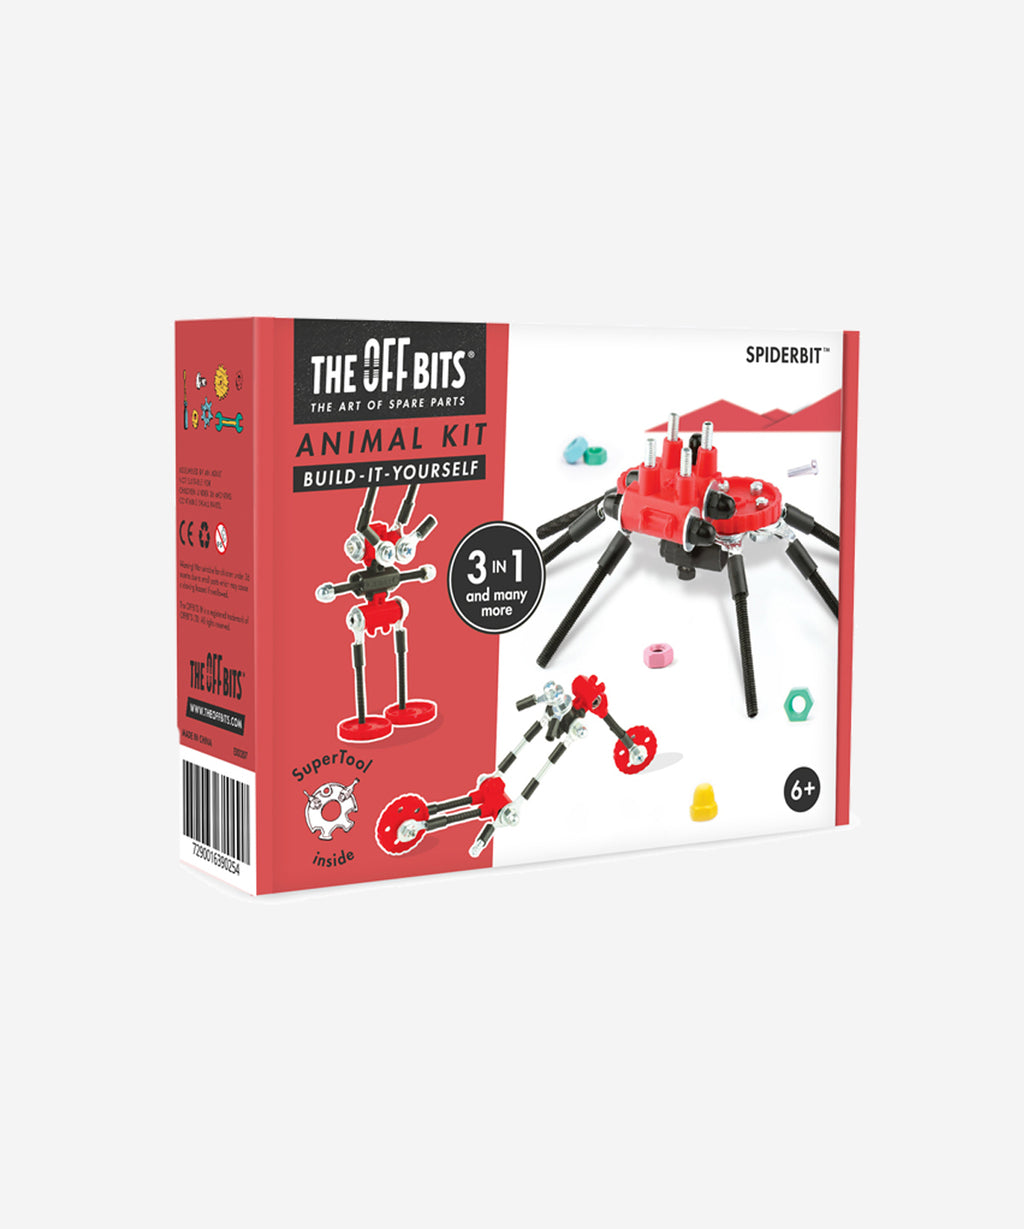 The OffBits - Animal Kit 3 in 1 - SpiderBit